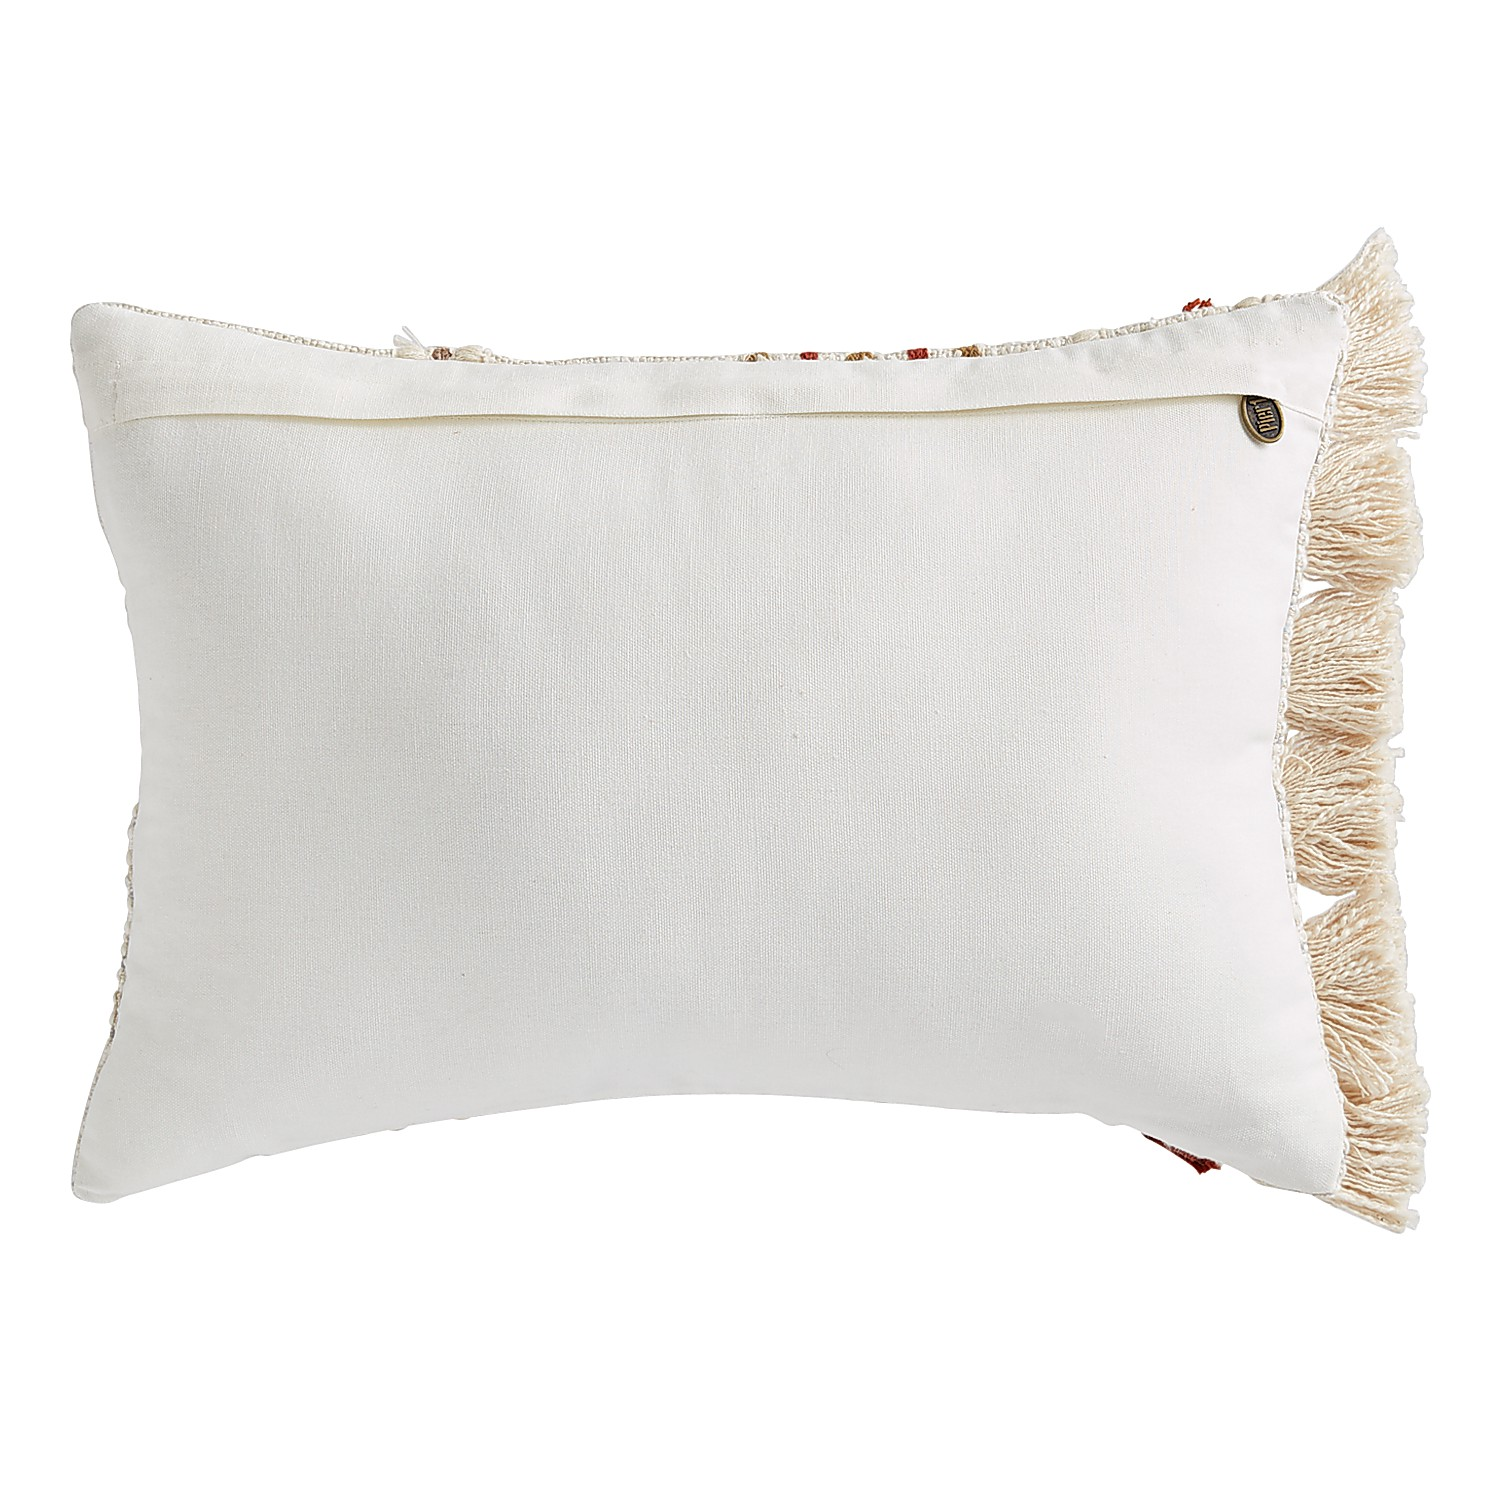 Rust & Ivory Lumbar Pillow with Tassels